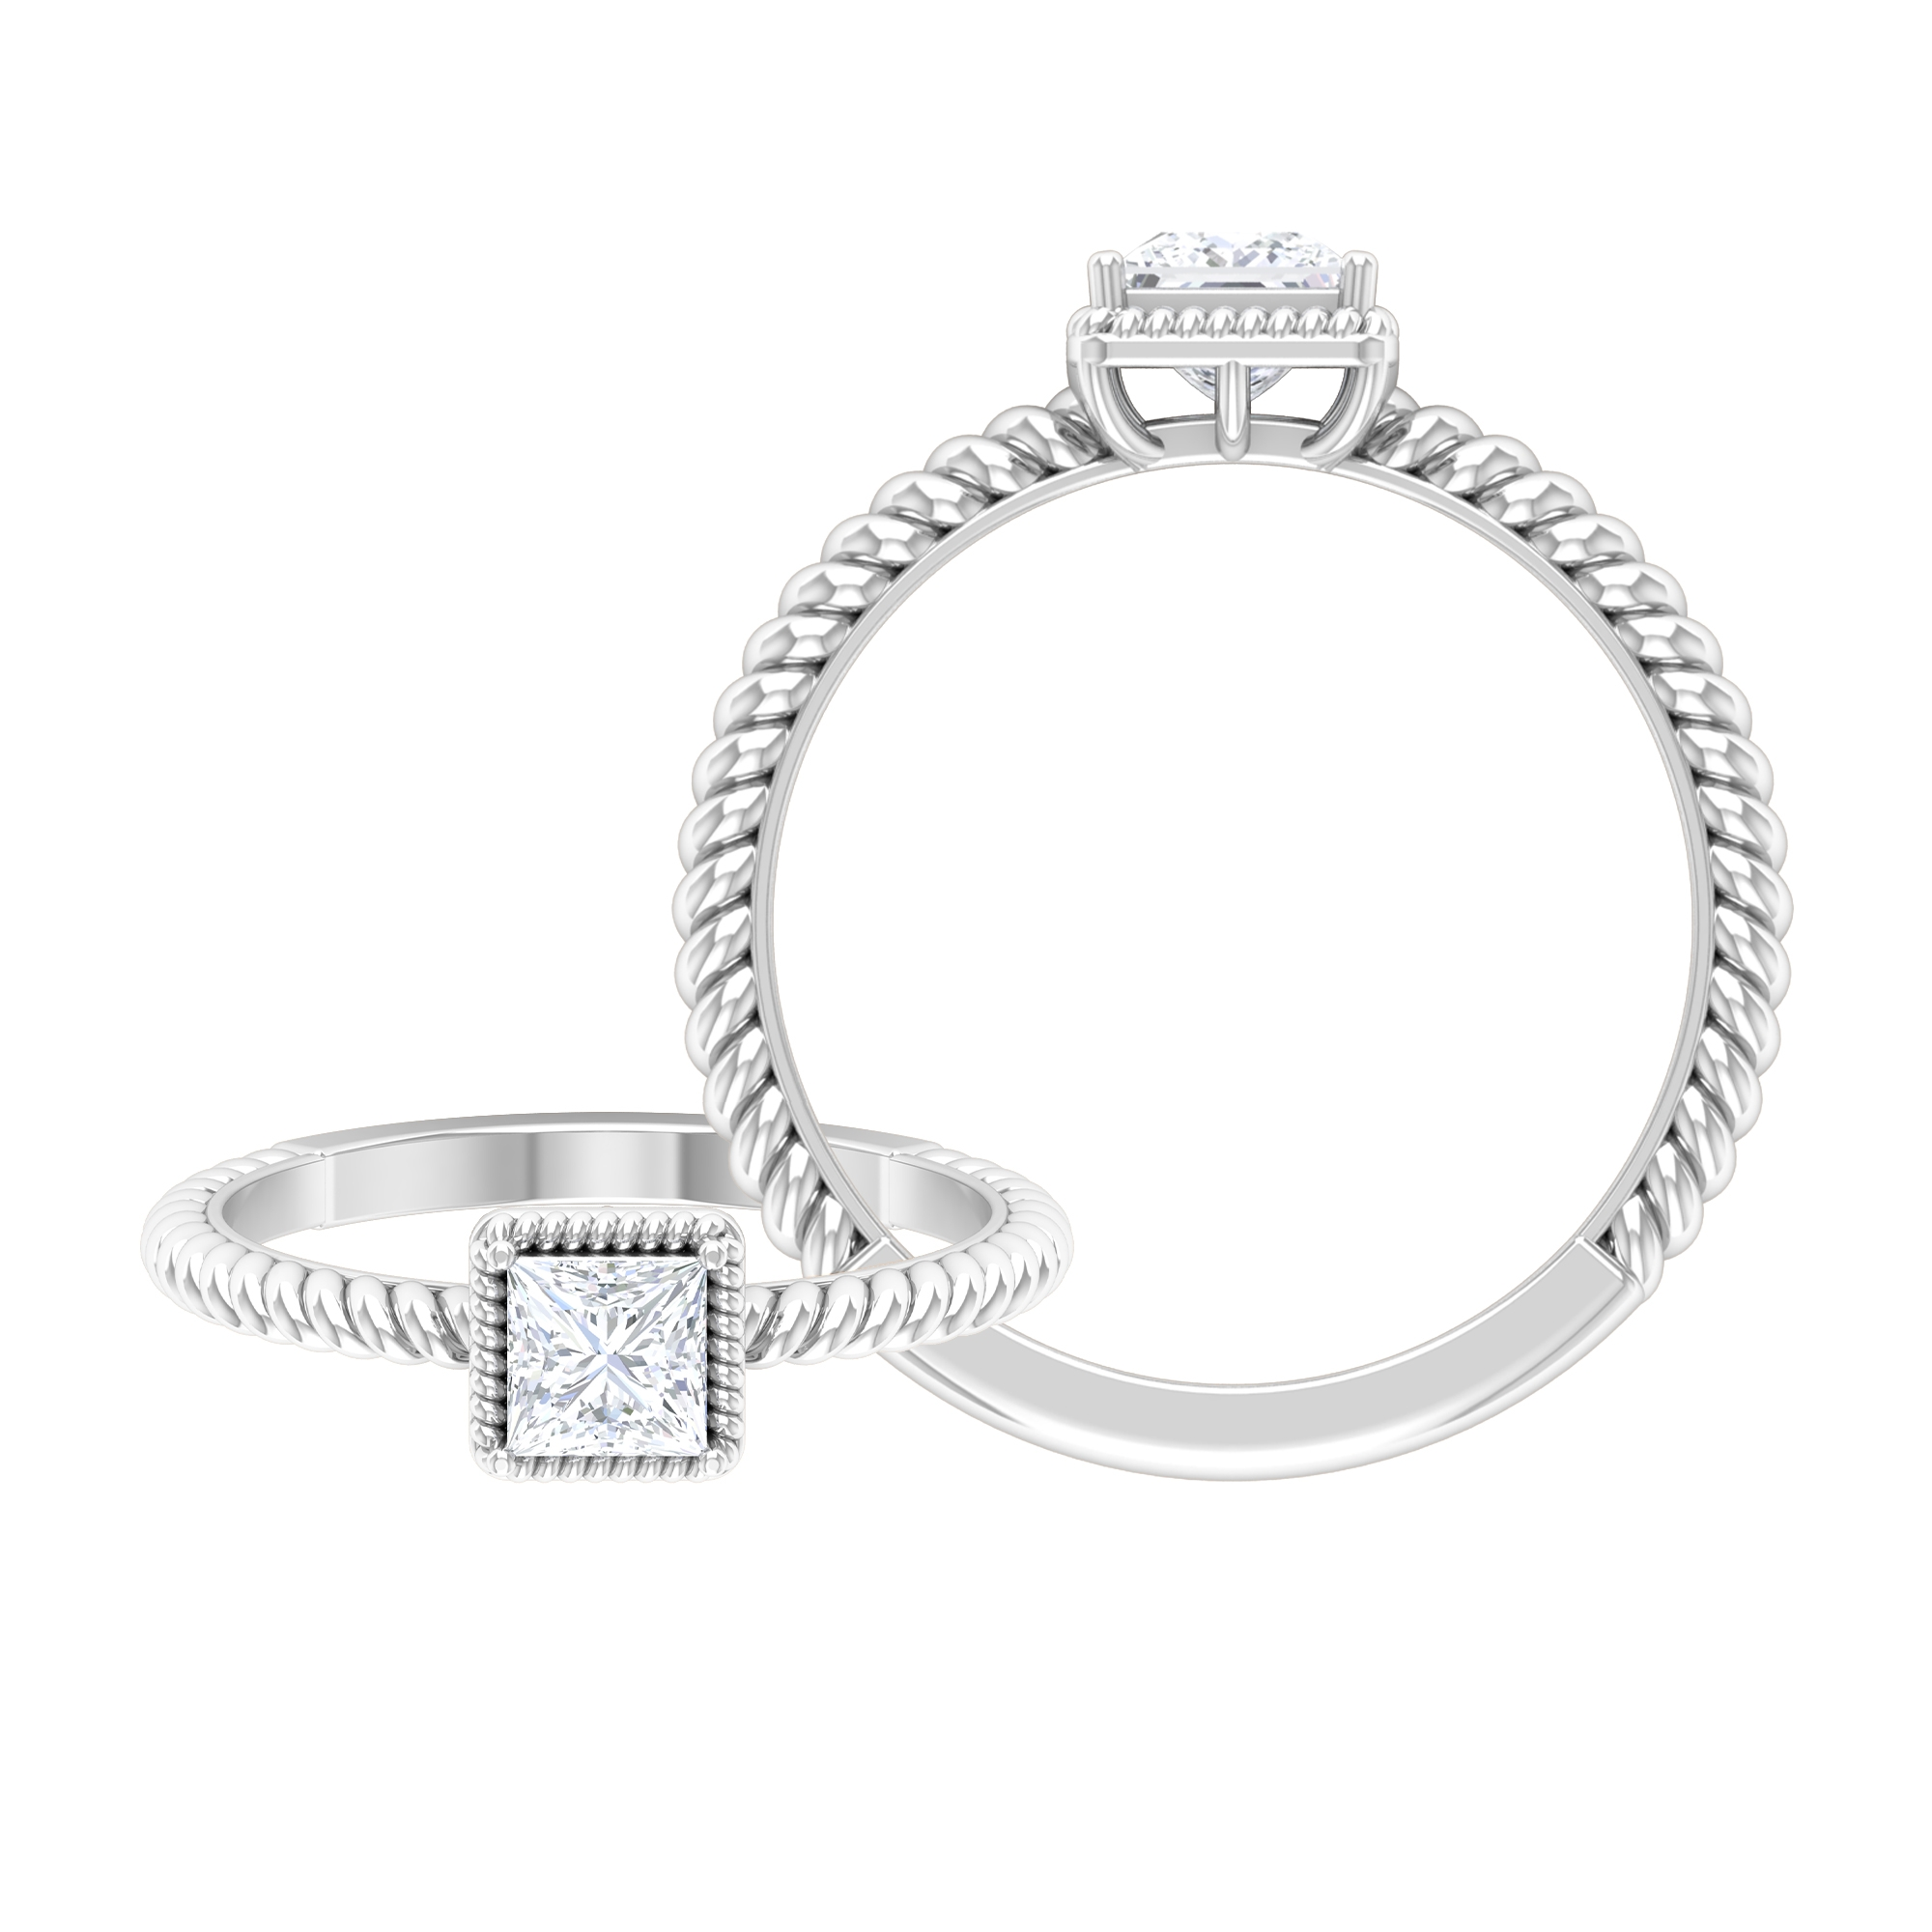 1/2 CT Diamond Solitaire Prong Set Ring with Rope Frame